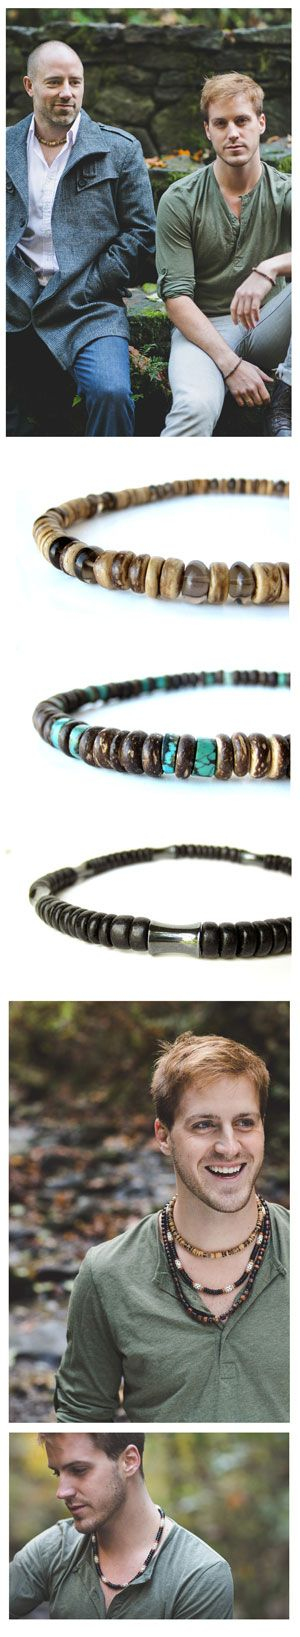 Tribal Turquoise a luxury, wooden mens necklace - Authentic Arts | Nature Art and Jewelry by Jenny Hoople